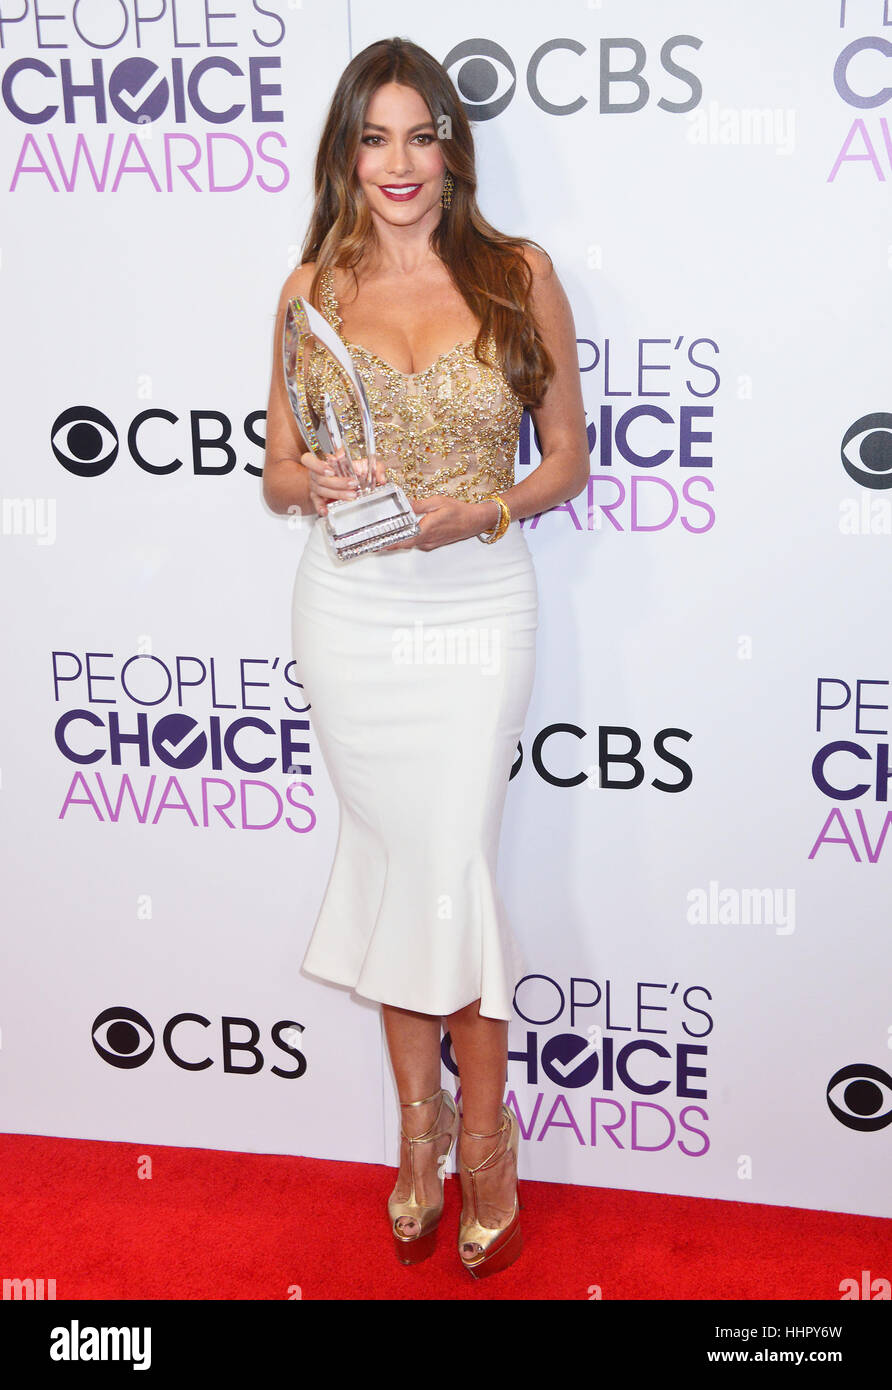 Sofia Vergara 213 arrivant au People's Choice Awards 2017 au Theatre de Los Angeles. 18 janvier, 2017. Photo Stock